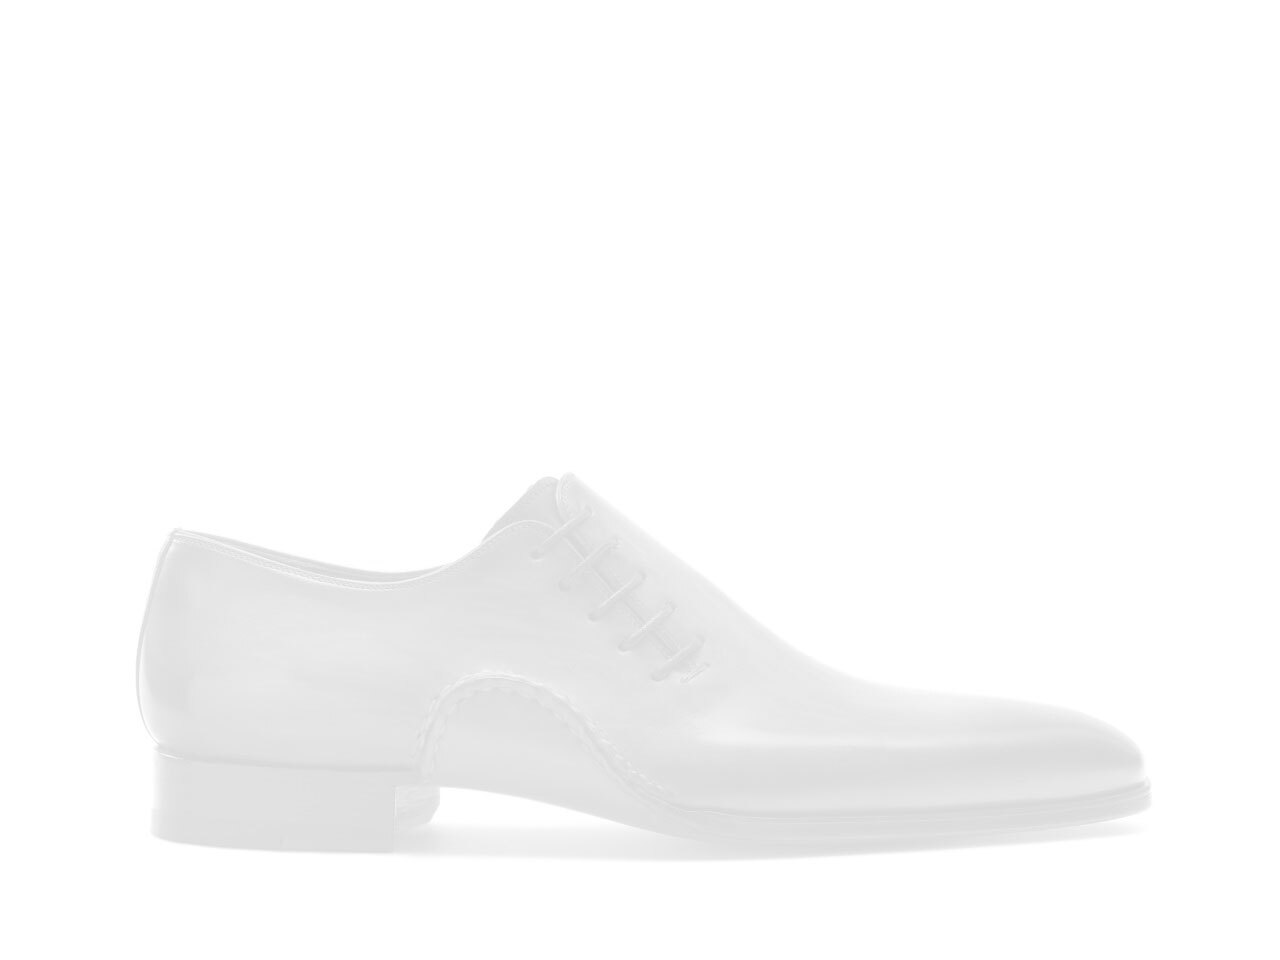 Side view of the Magnanni Hughes Grey Men's House Slippers